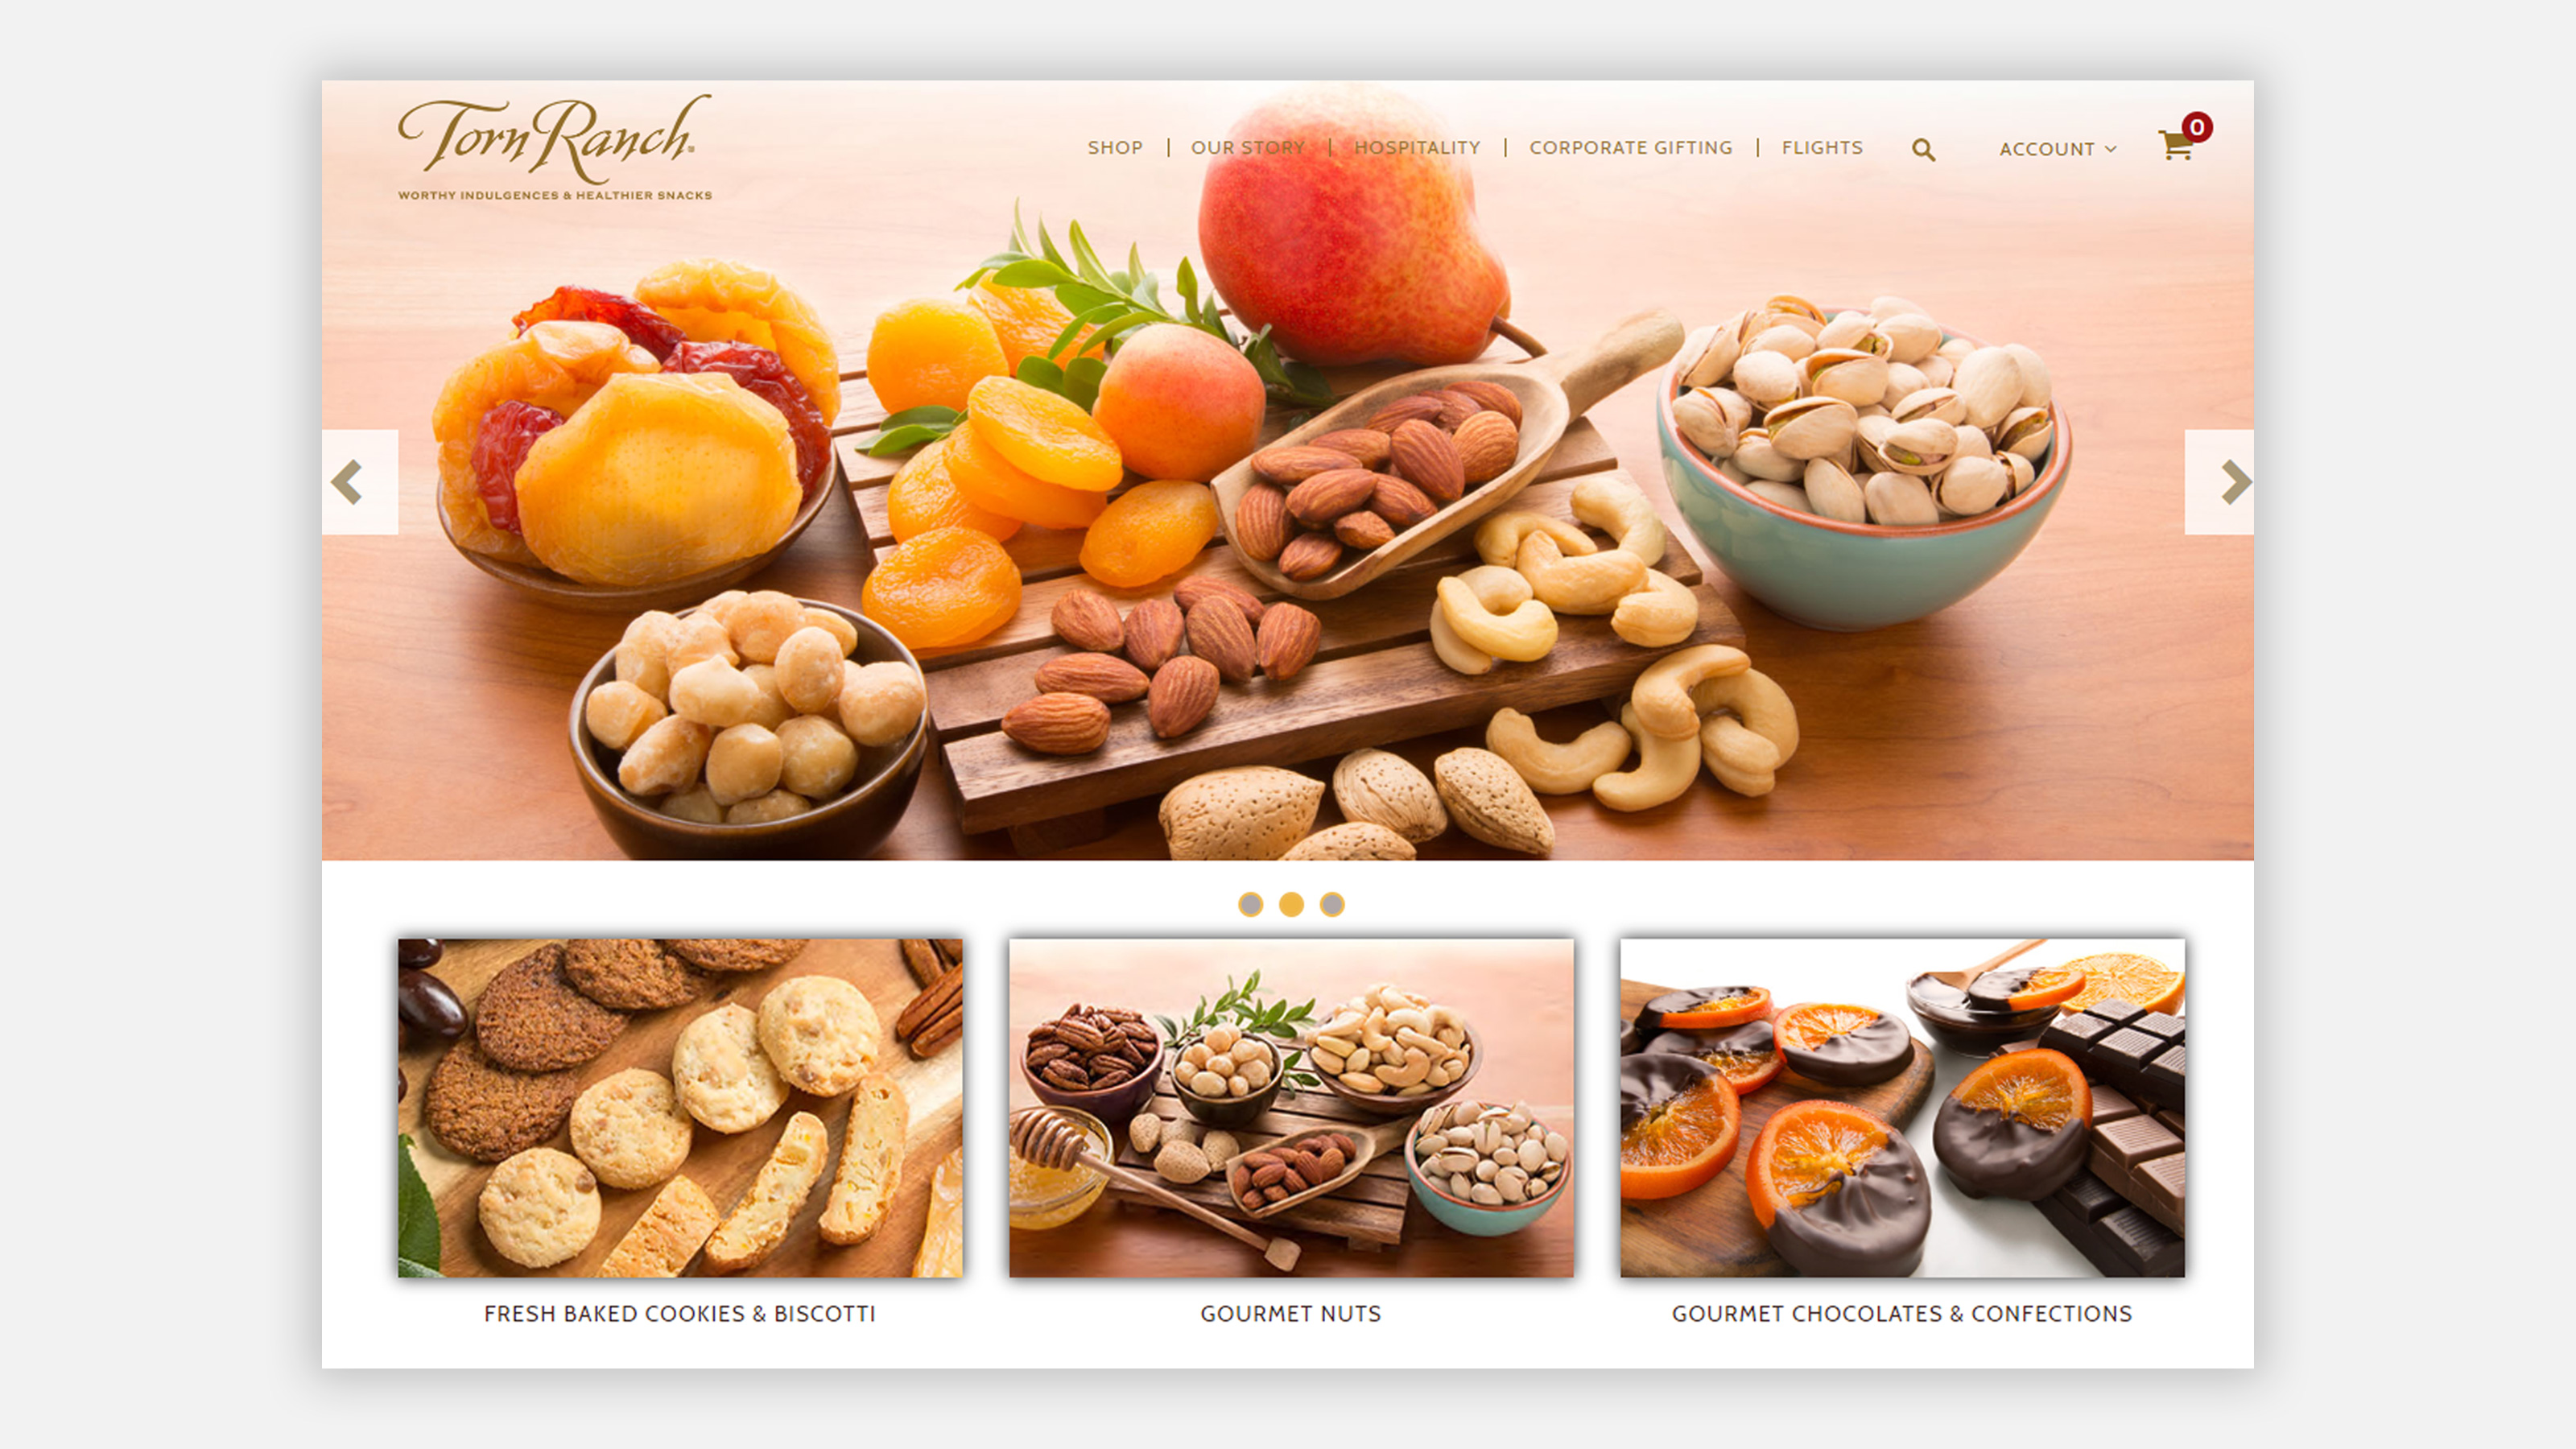 Torn Ranch website homepage, featuring a variety of dried fruit, nuts, cookies and chocolate dipped oranges